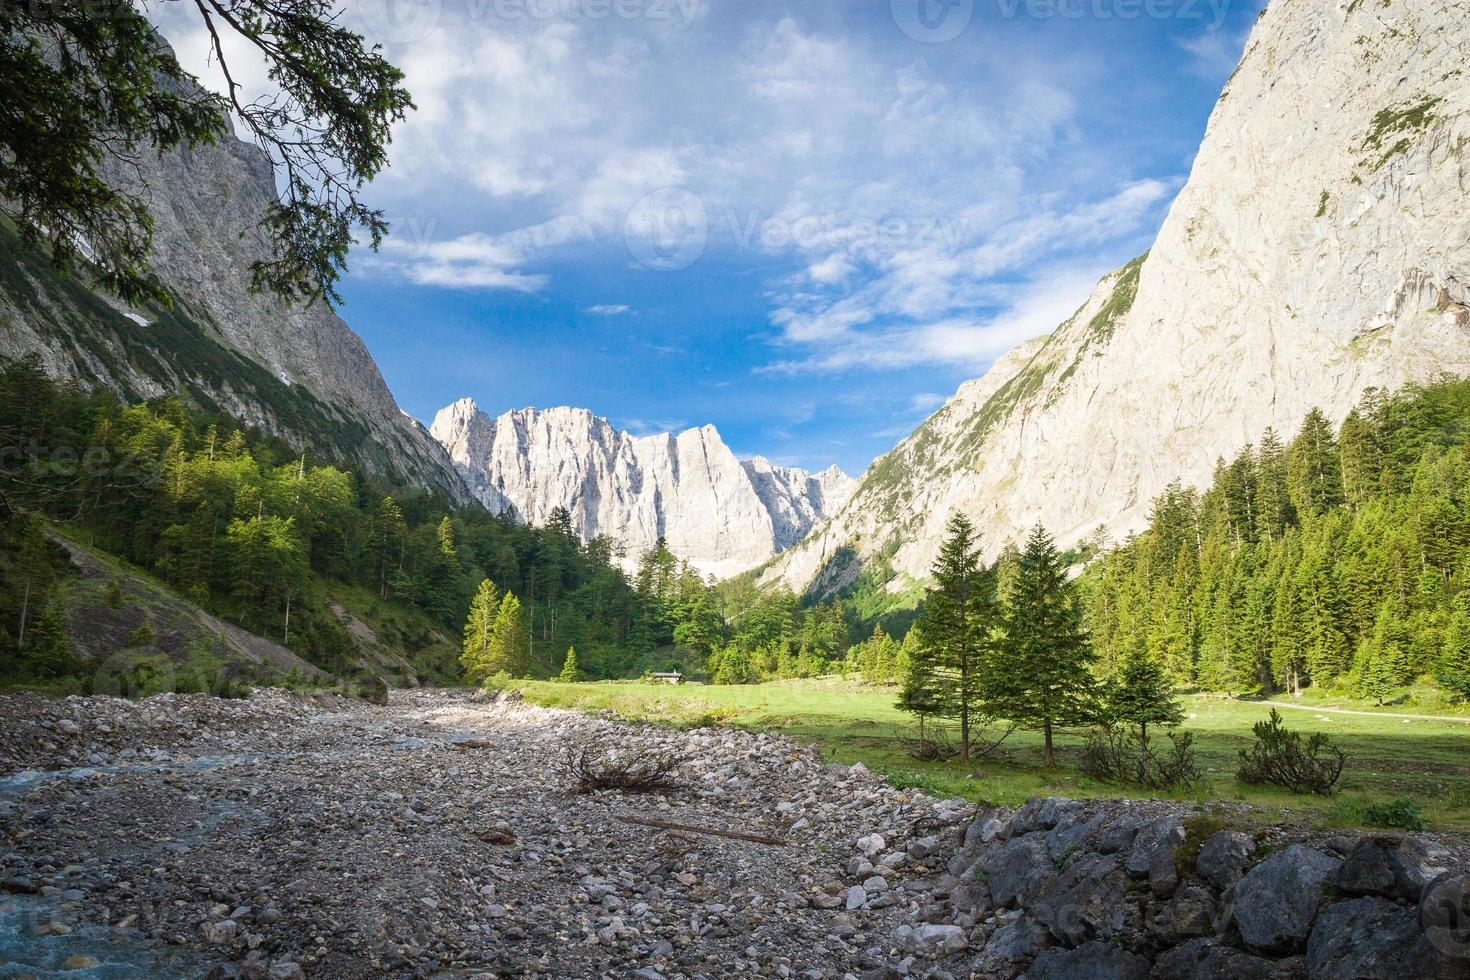 Summits in the Karwendel mountains photo